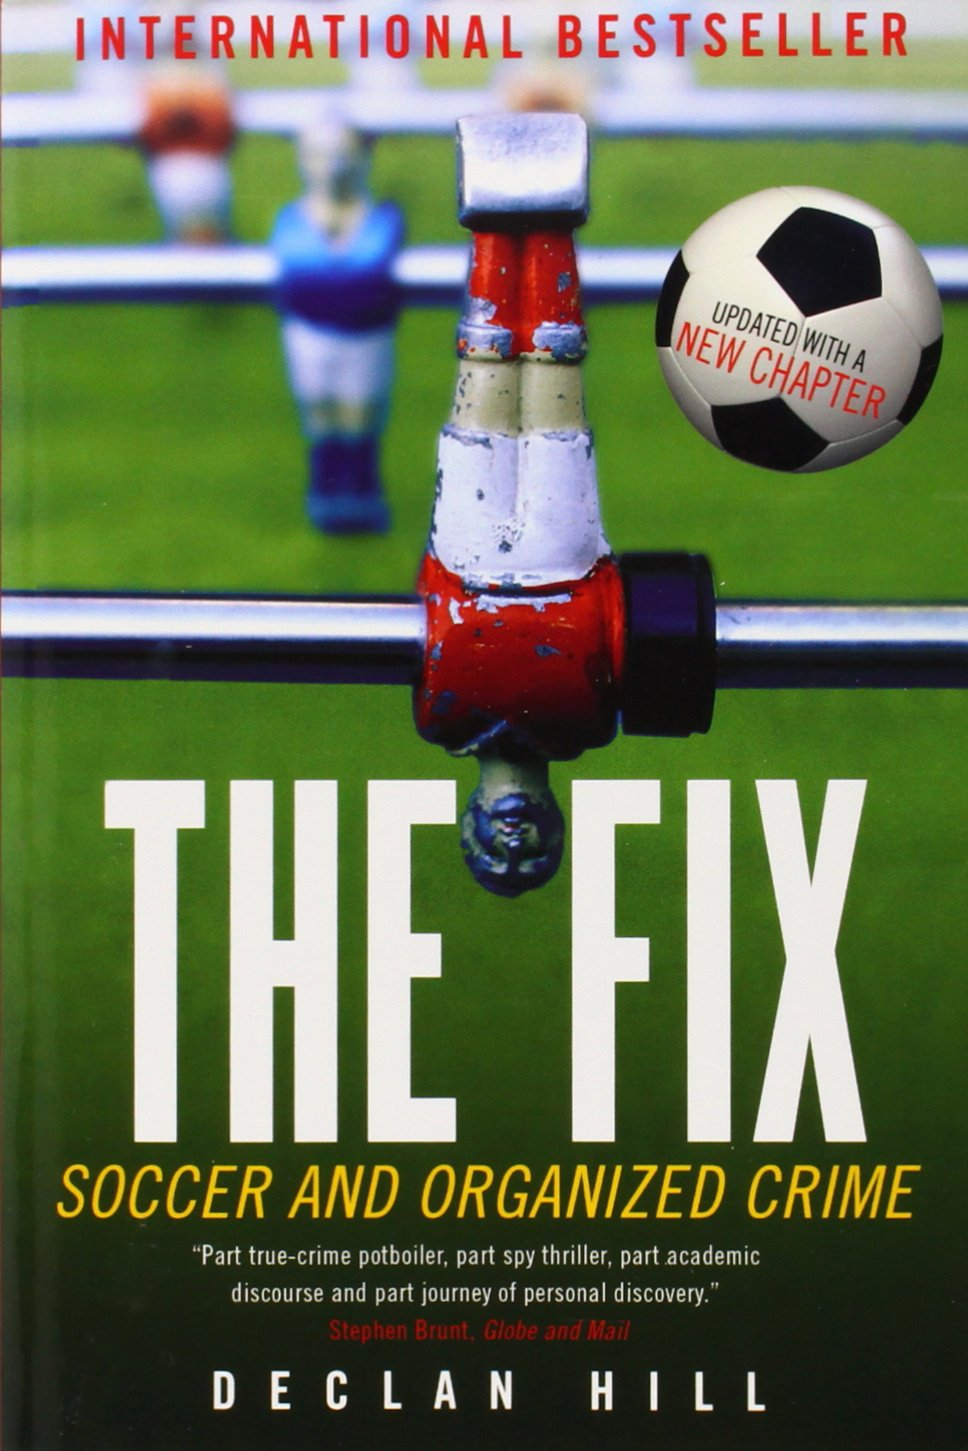 Fix Soccer Organized Crime product image